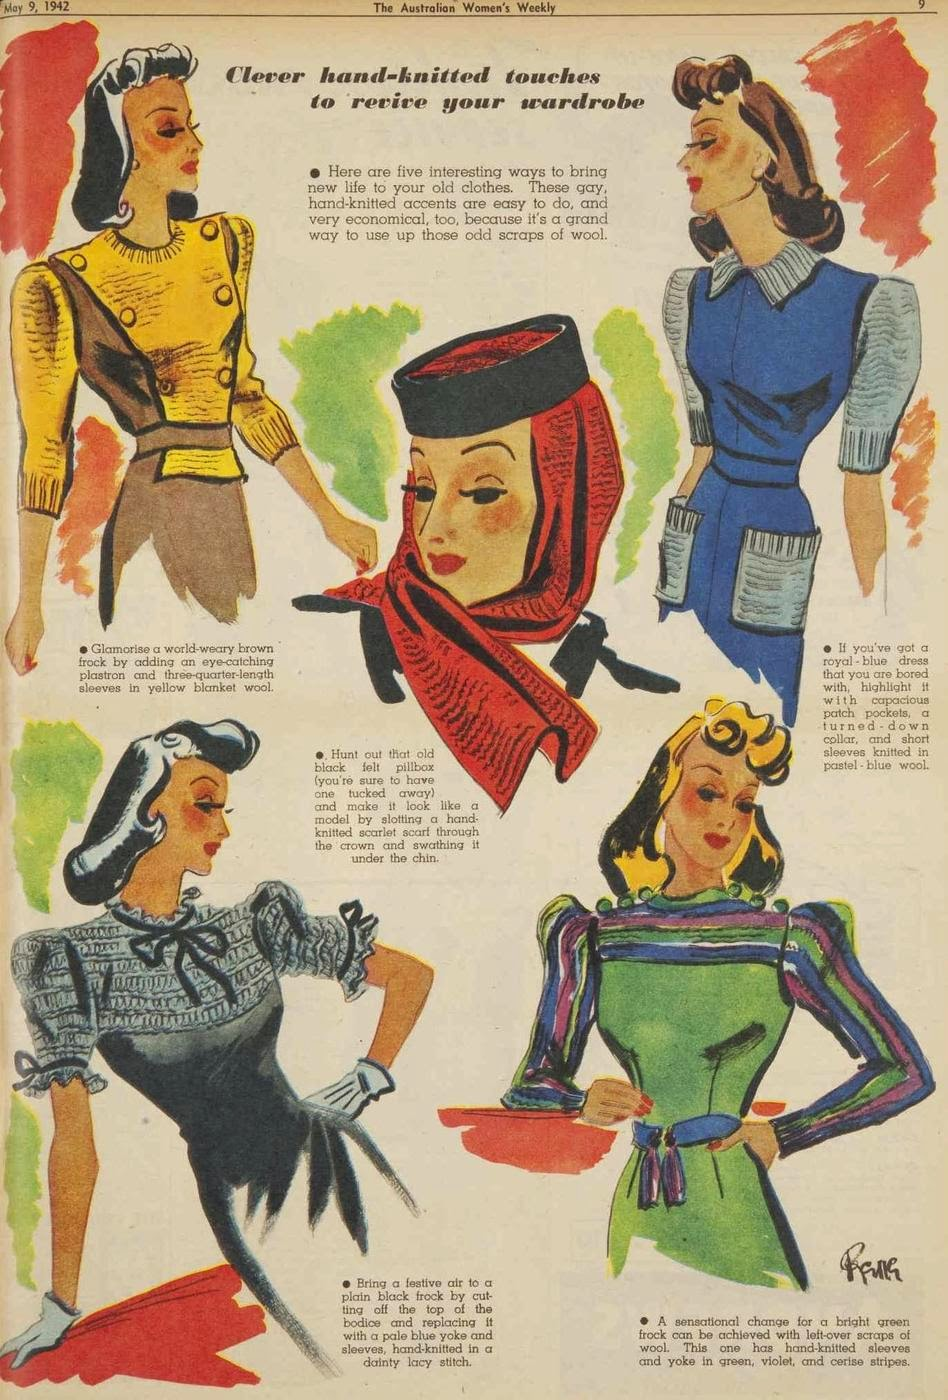 vintage 1940s fashion tips